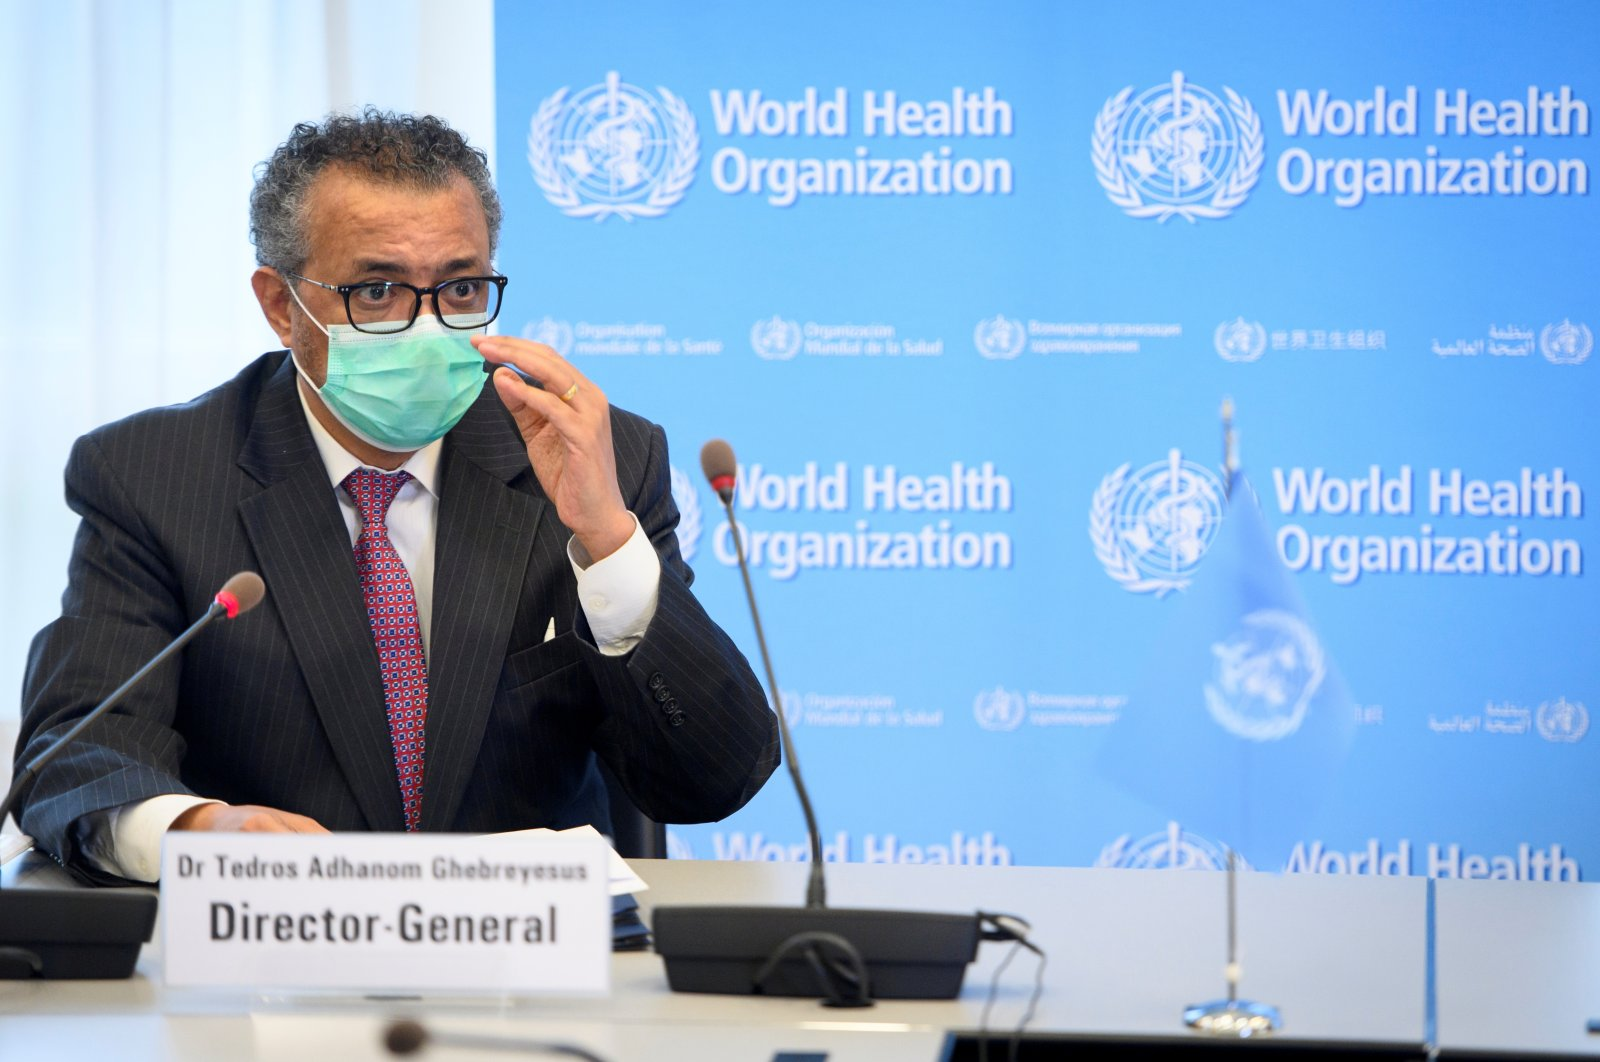 World Health Organization (WHO) Director-General Tedros Adhanom Ghebreyesus speaks during a bilateral meeting on the sidelines of the opening of the 74th World Health Assembly at WHO headquarters, in Geneva, Switzerland, May 24, 2021. (Laurent Gillieron/Pool via REUTERS)